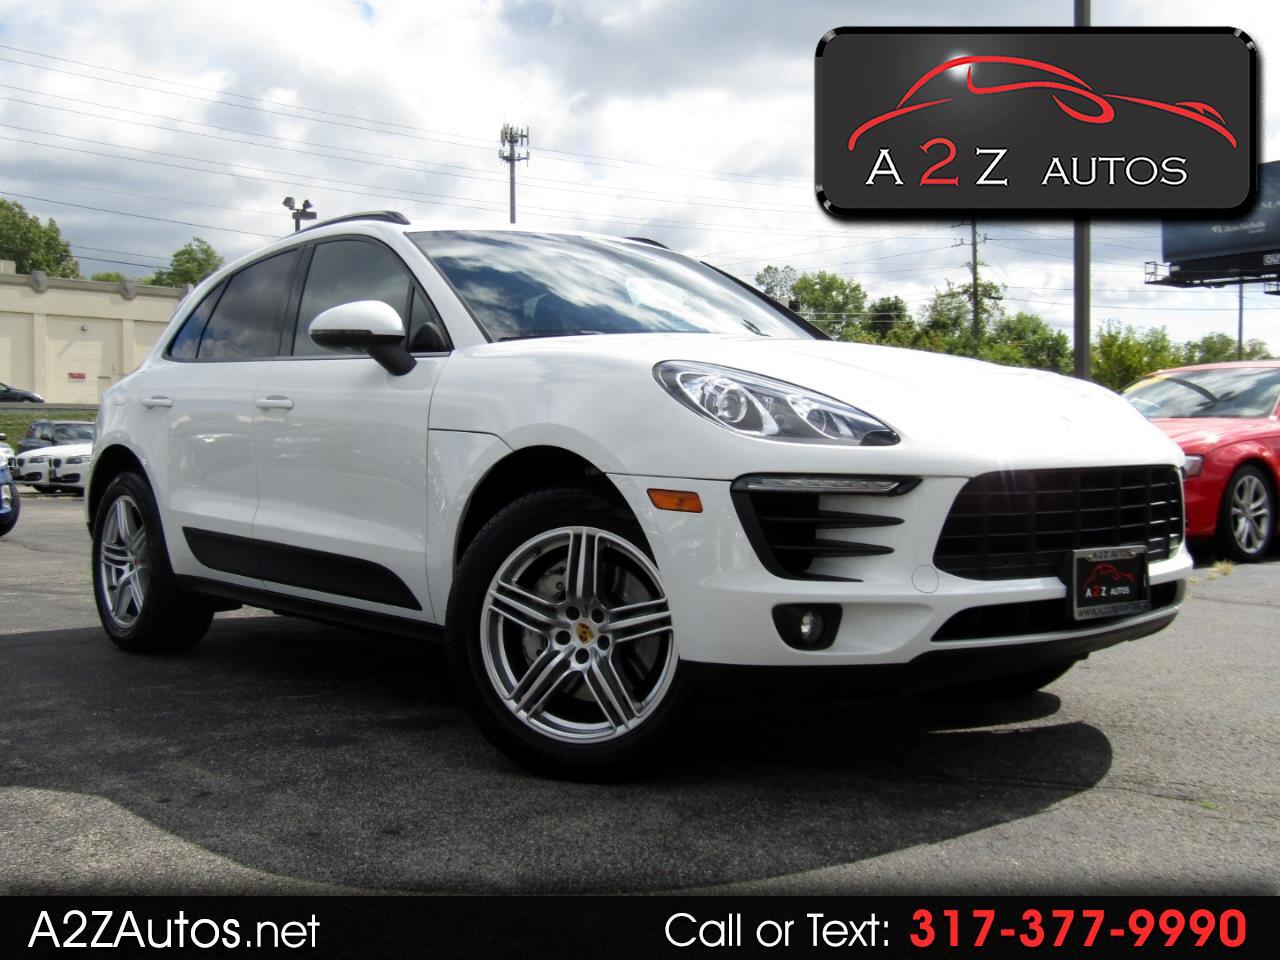 Cars For Sale In Indianapolis >> Buy Here Pay Here Cars For Sale Indianapolis In 46240 A2z Autos